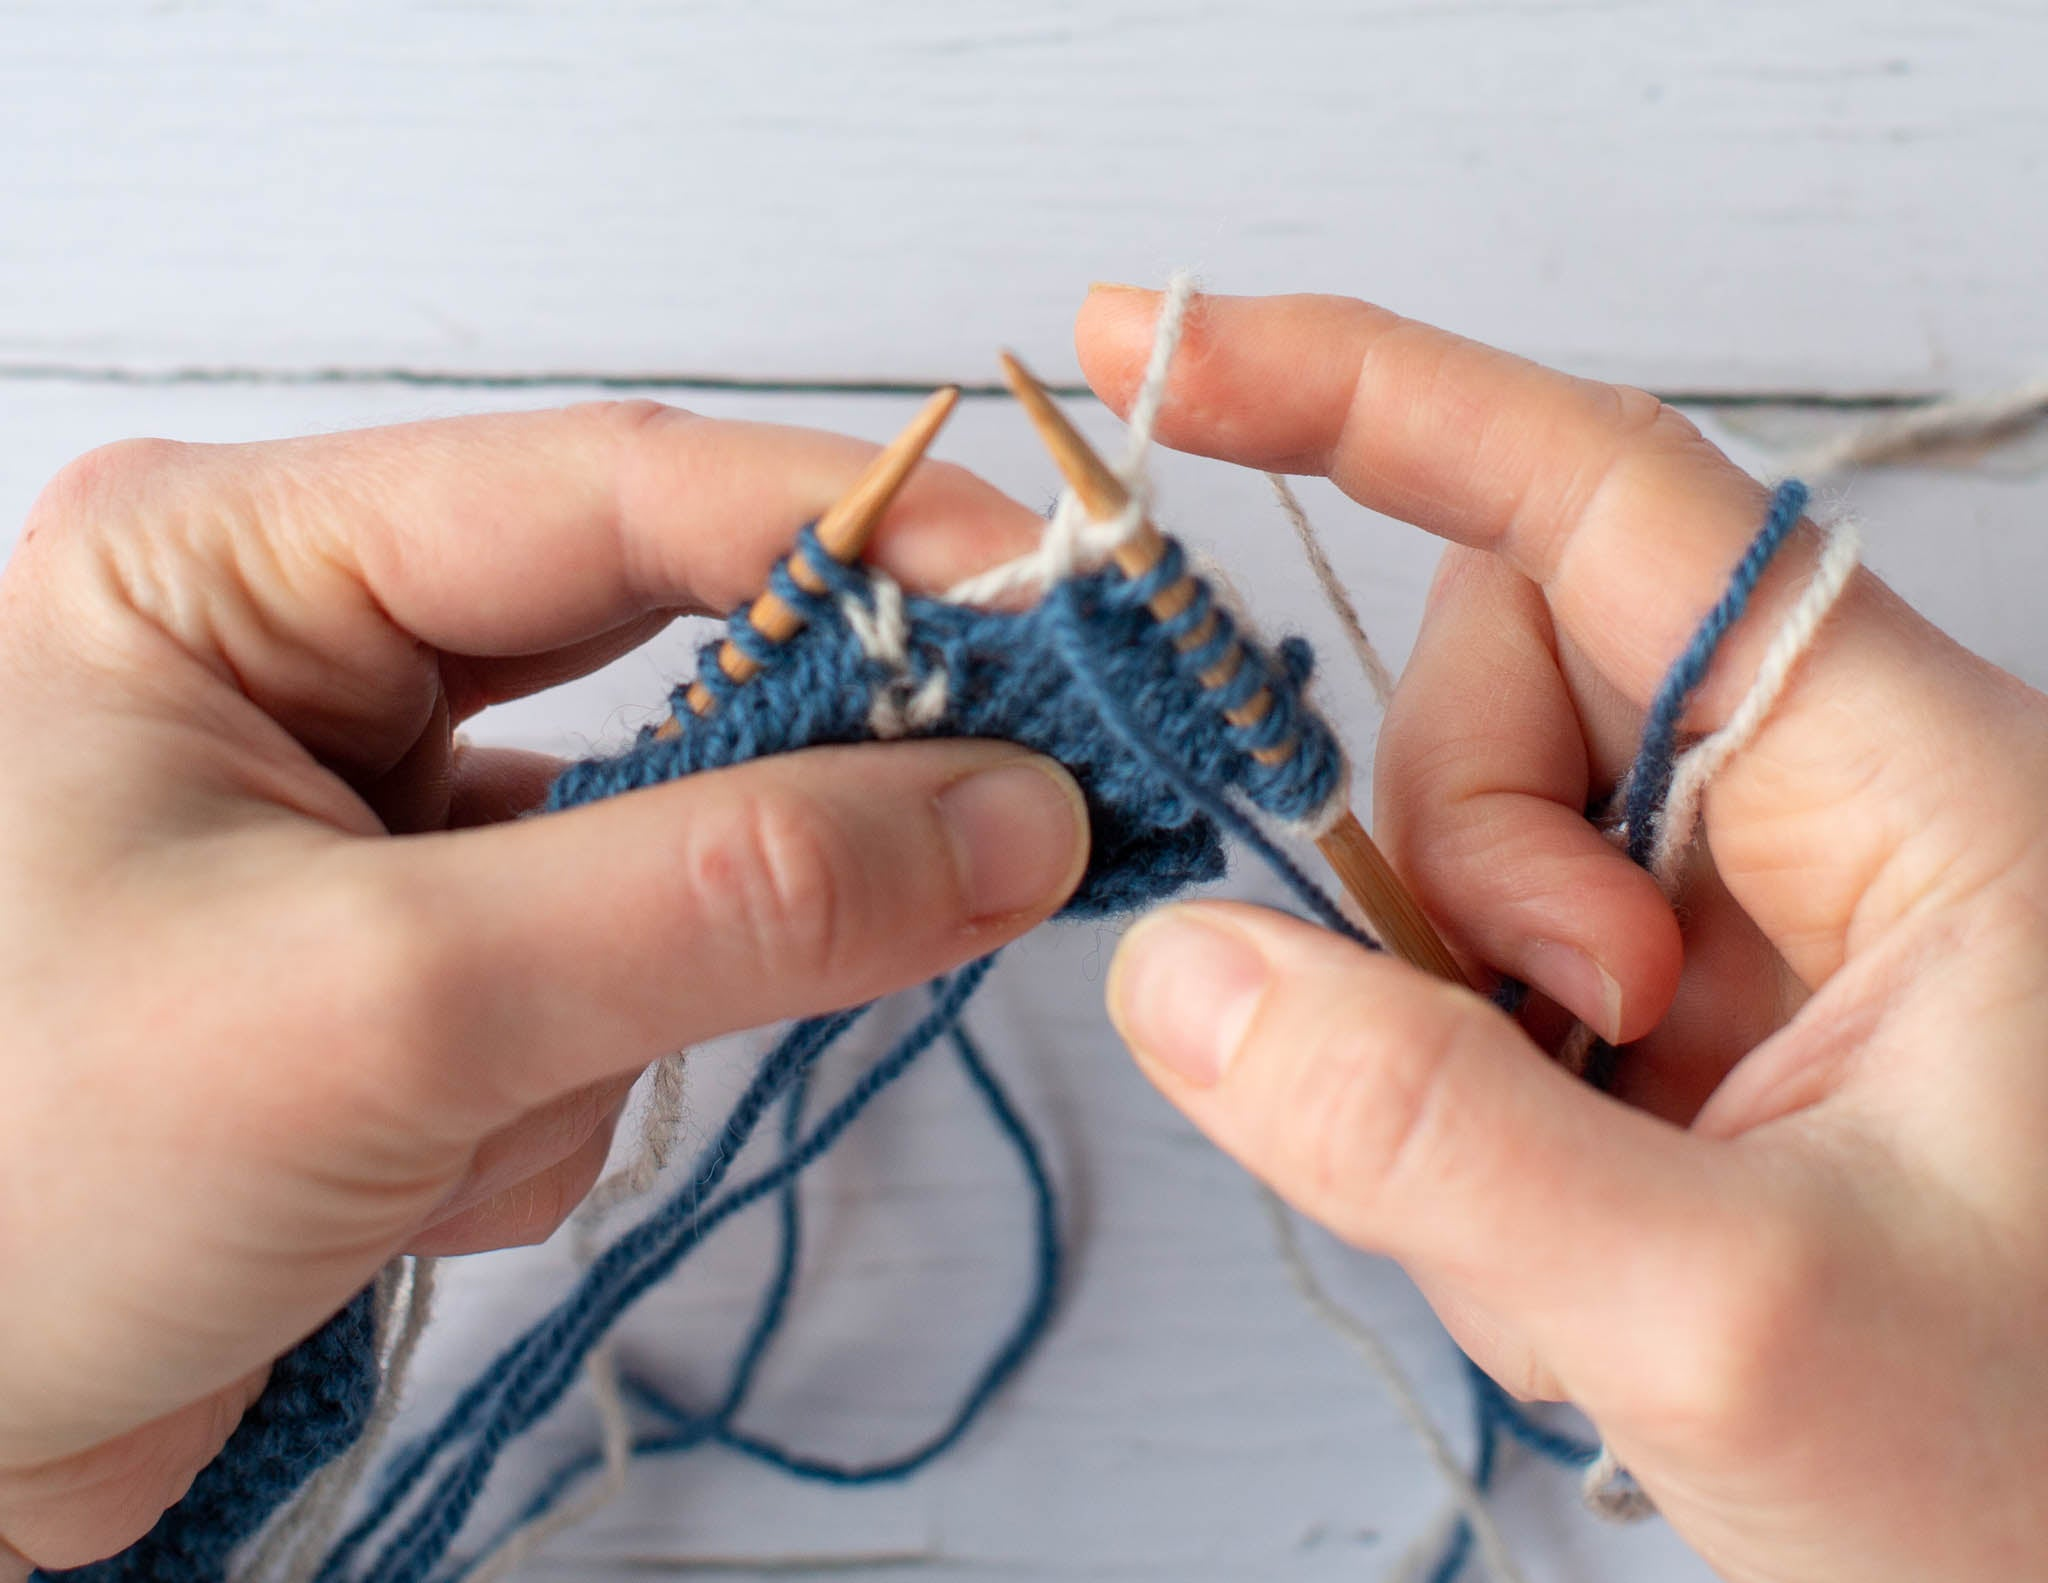 Two white hands holding a blue and white piece of knitting on wooden needles.